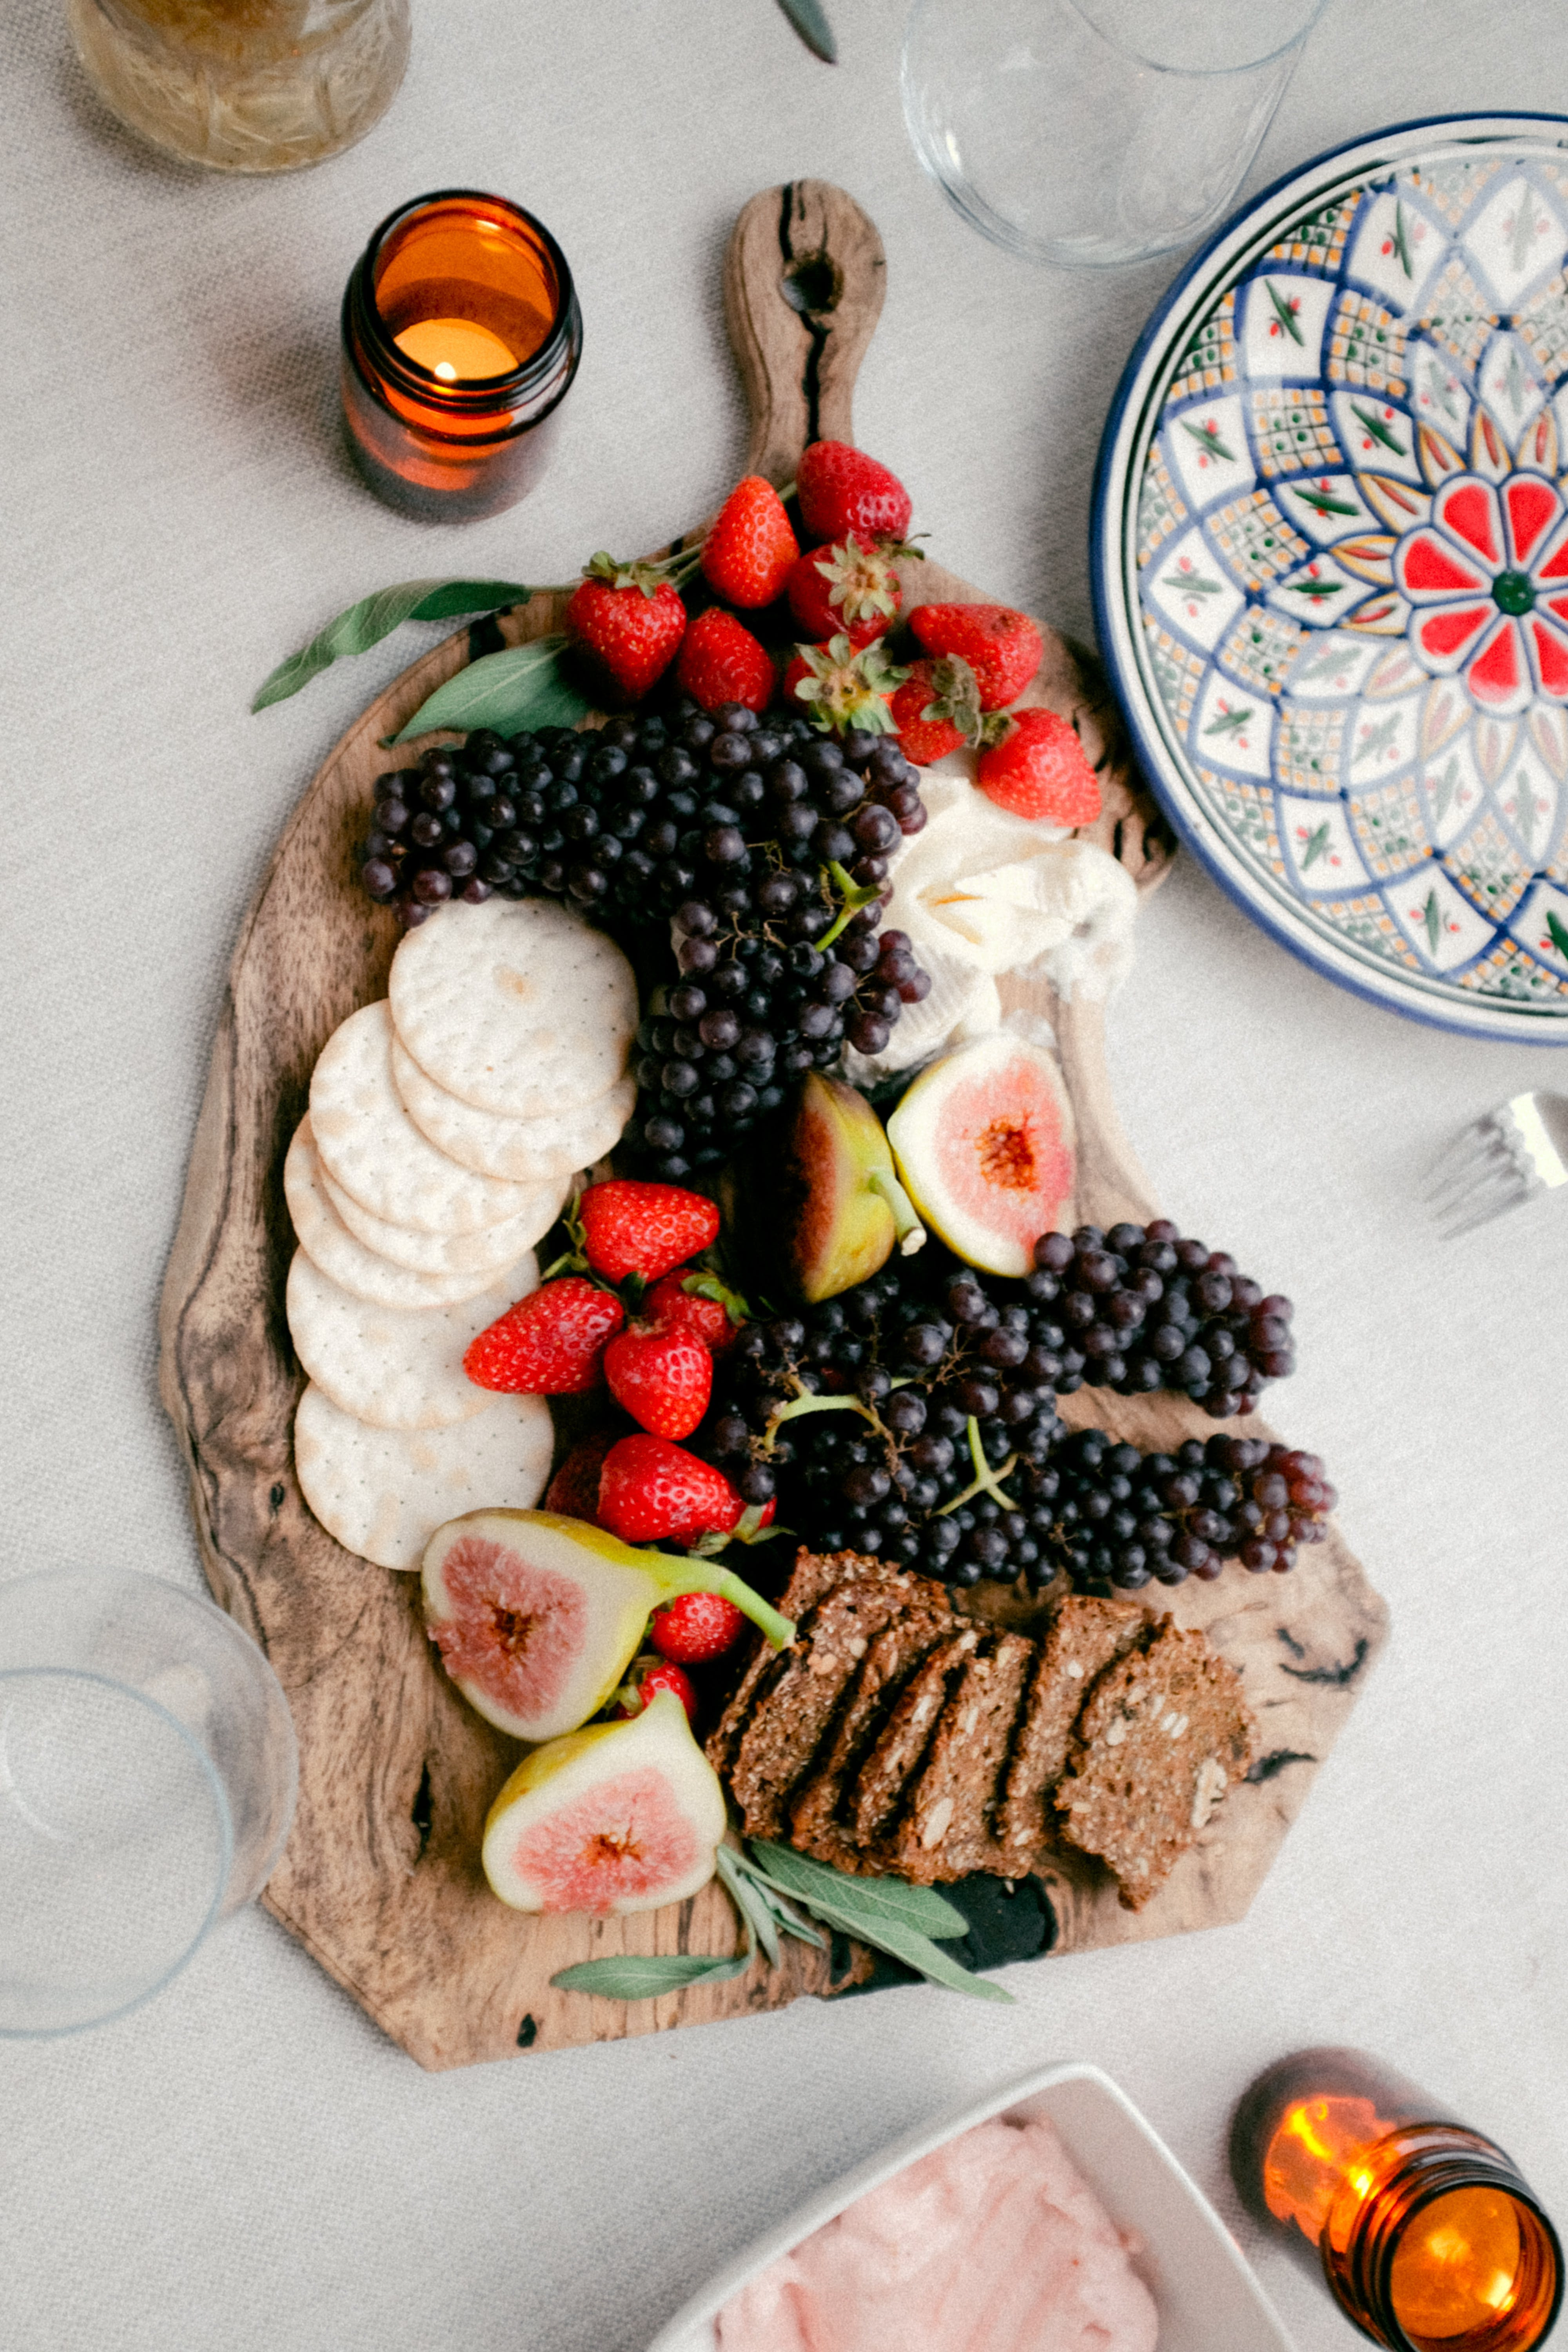 Assorted Variety Of Fruits On Tray